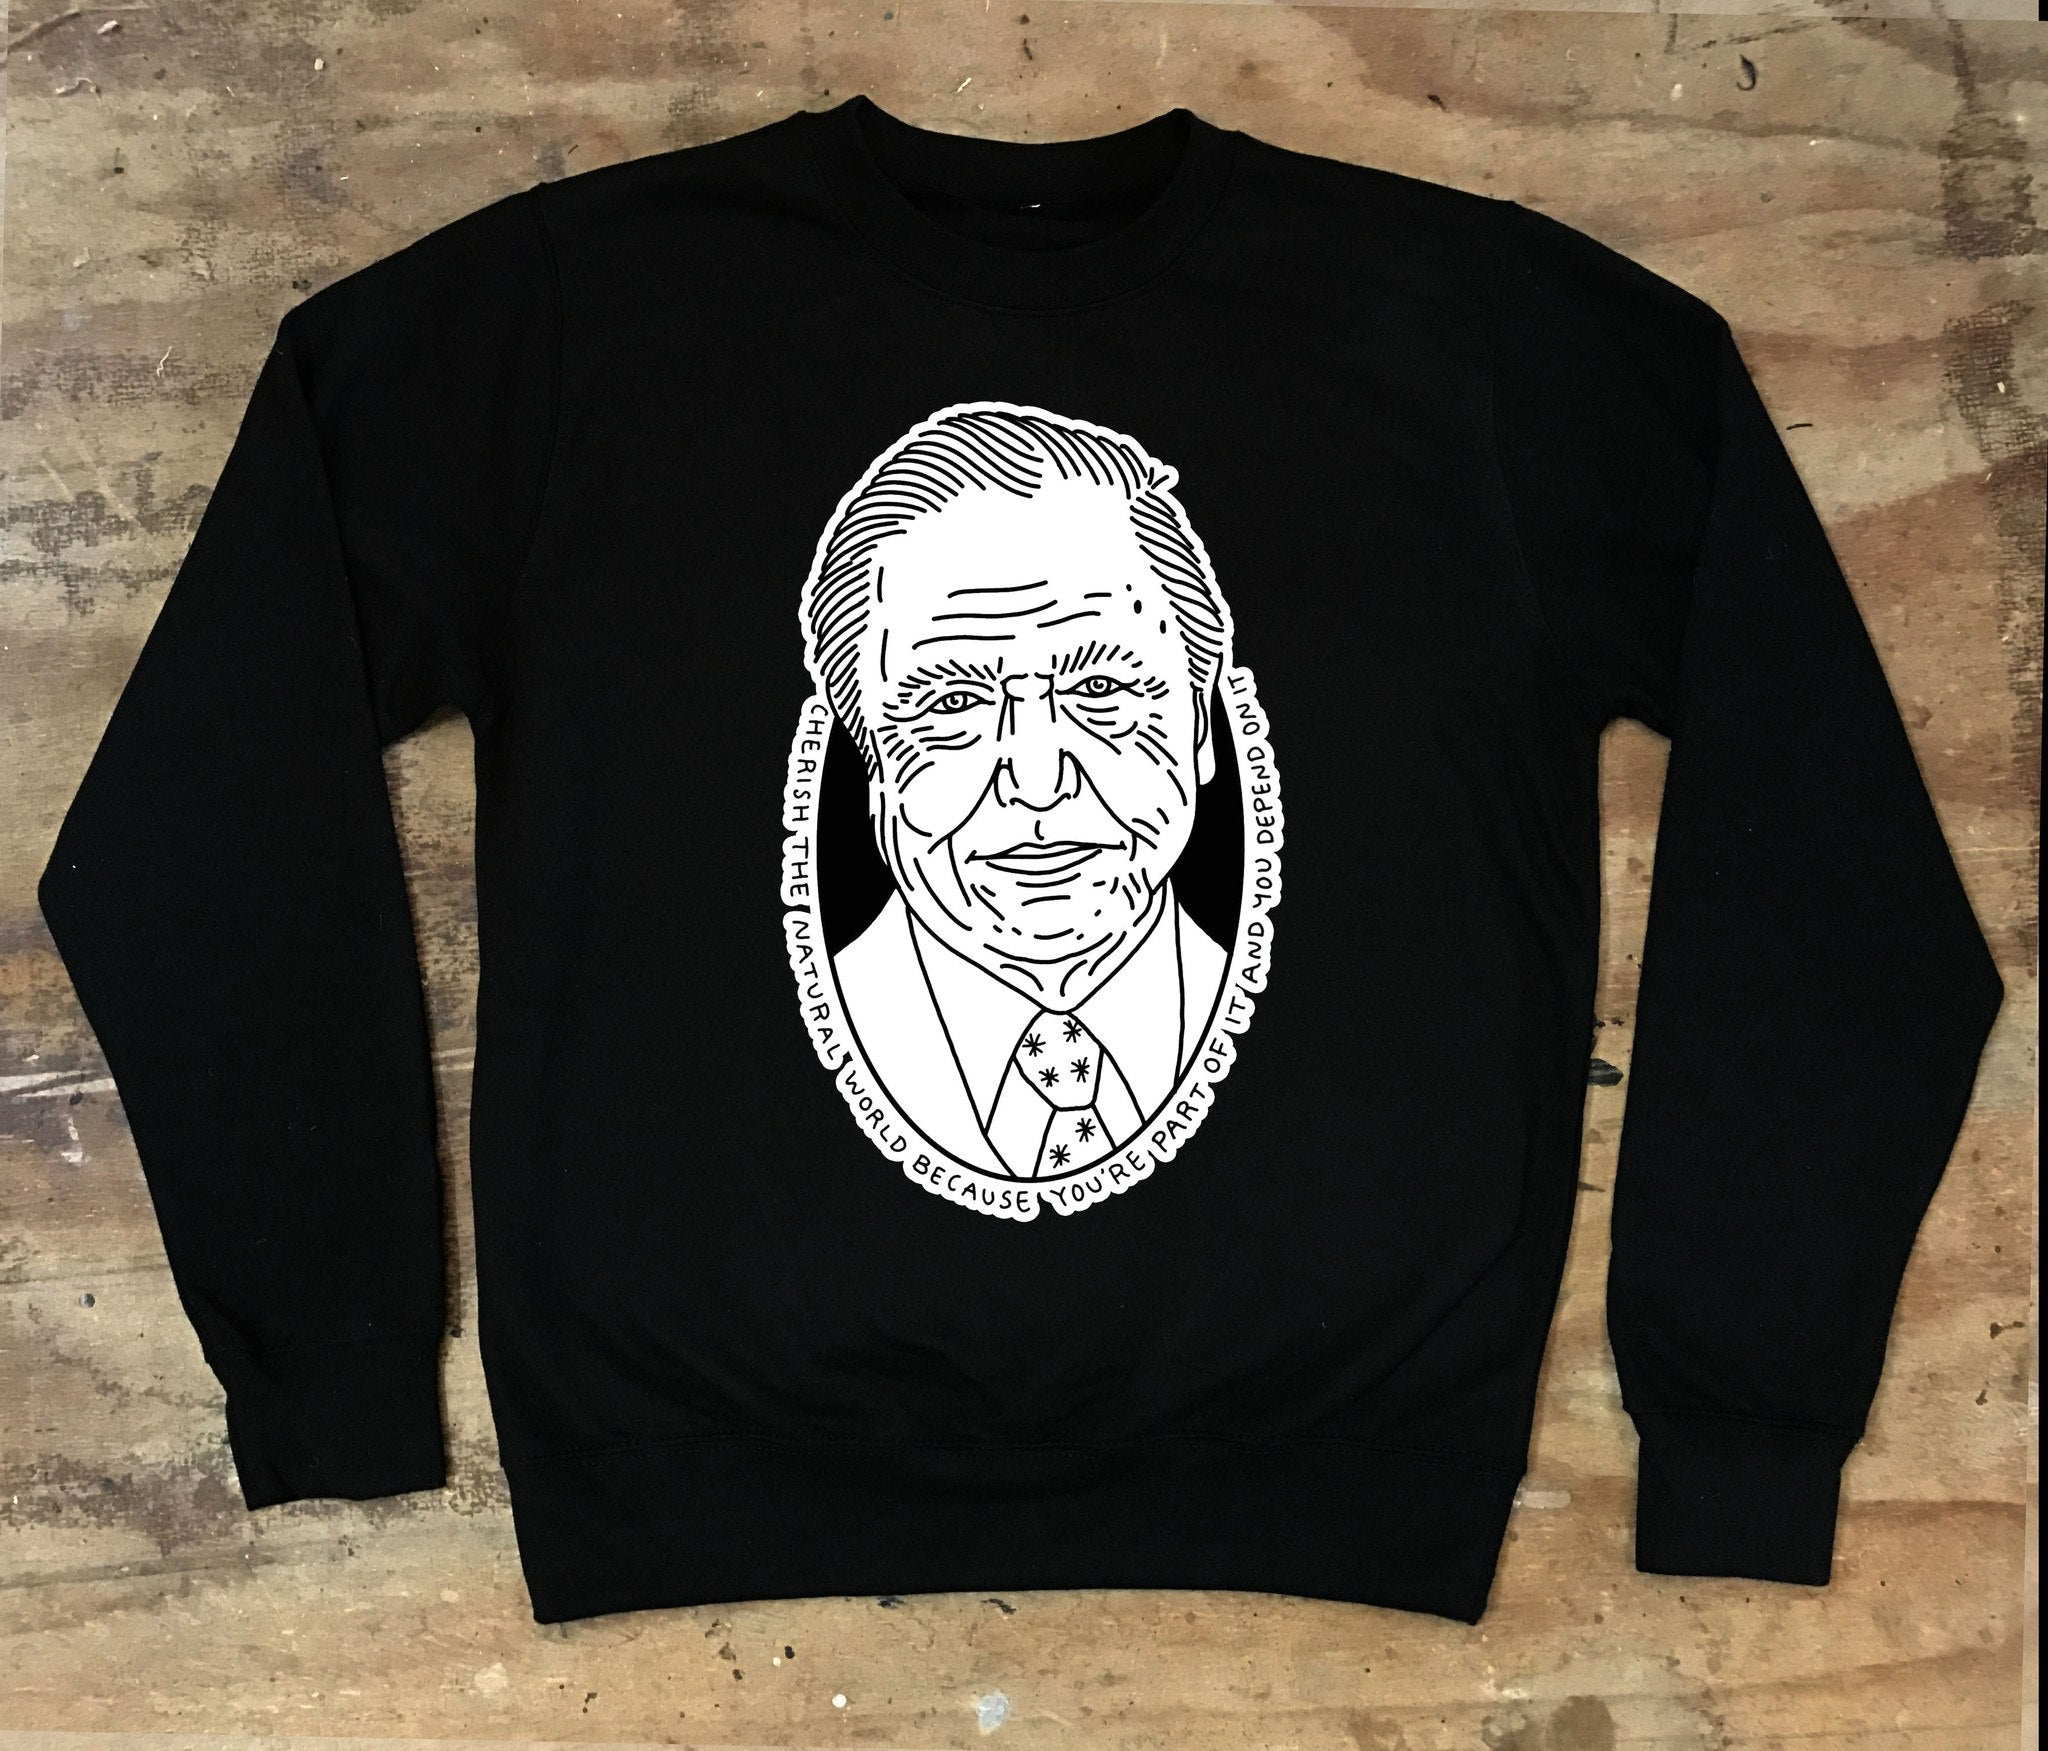 Sir David Attenborough - Cherish The Natural World Crew Neck Sweater - Jiggle Apparel